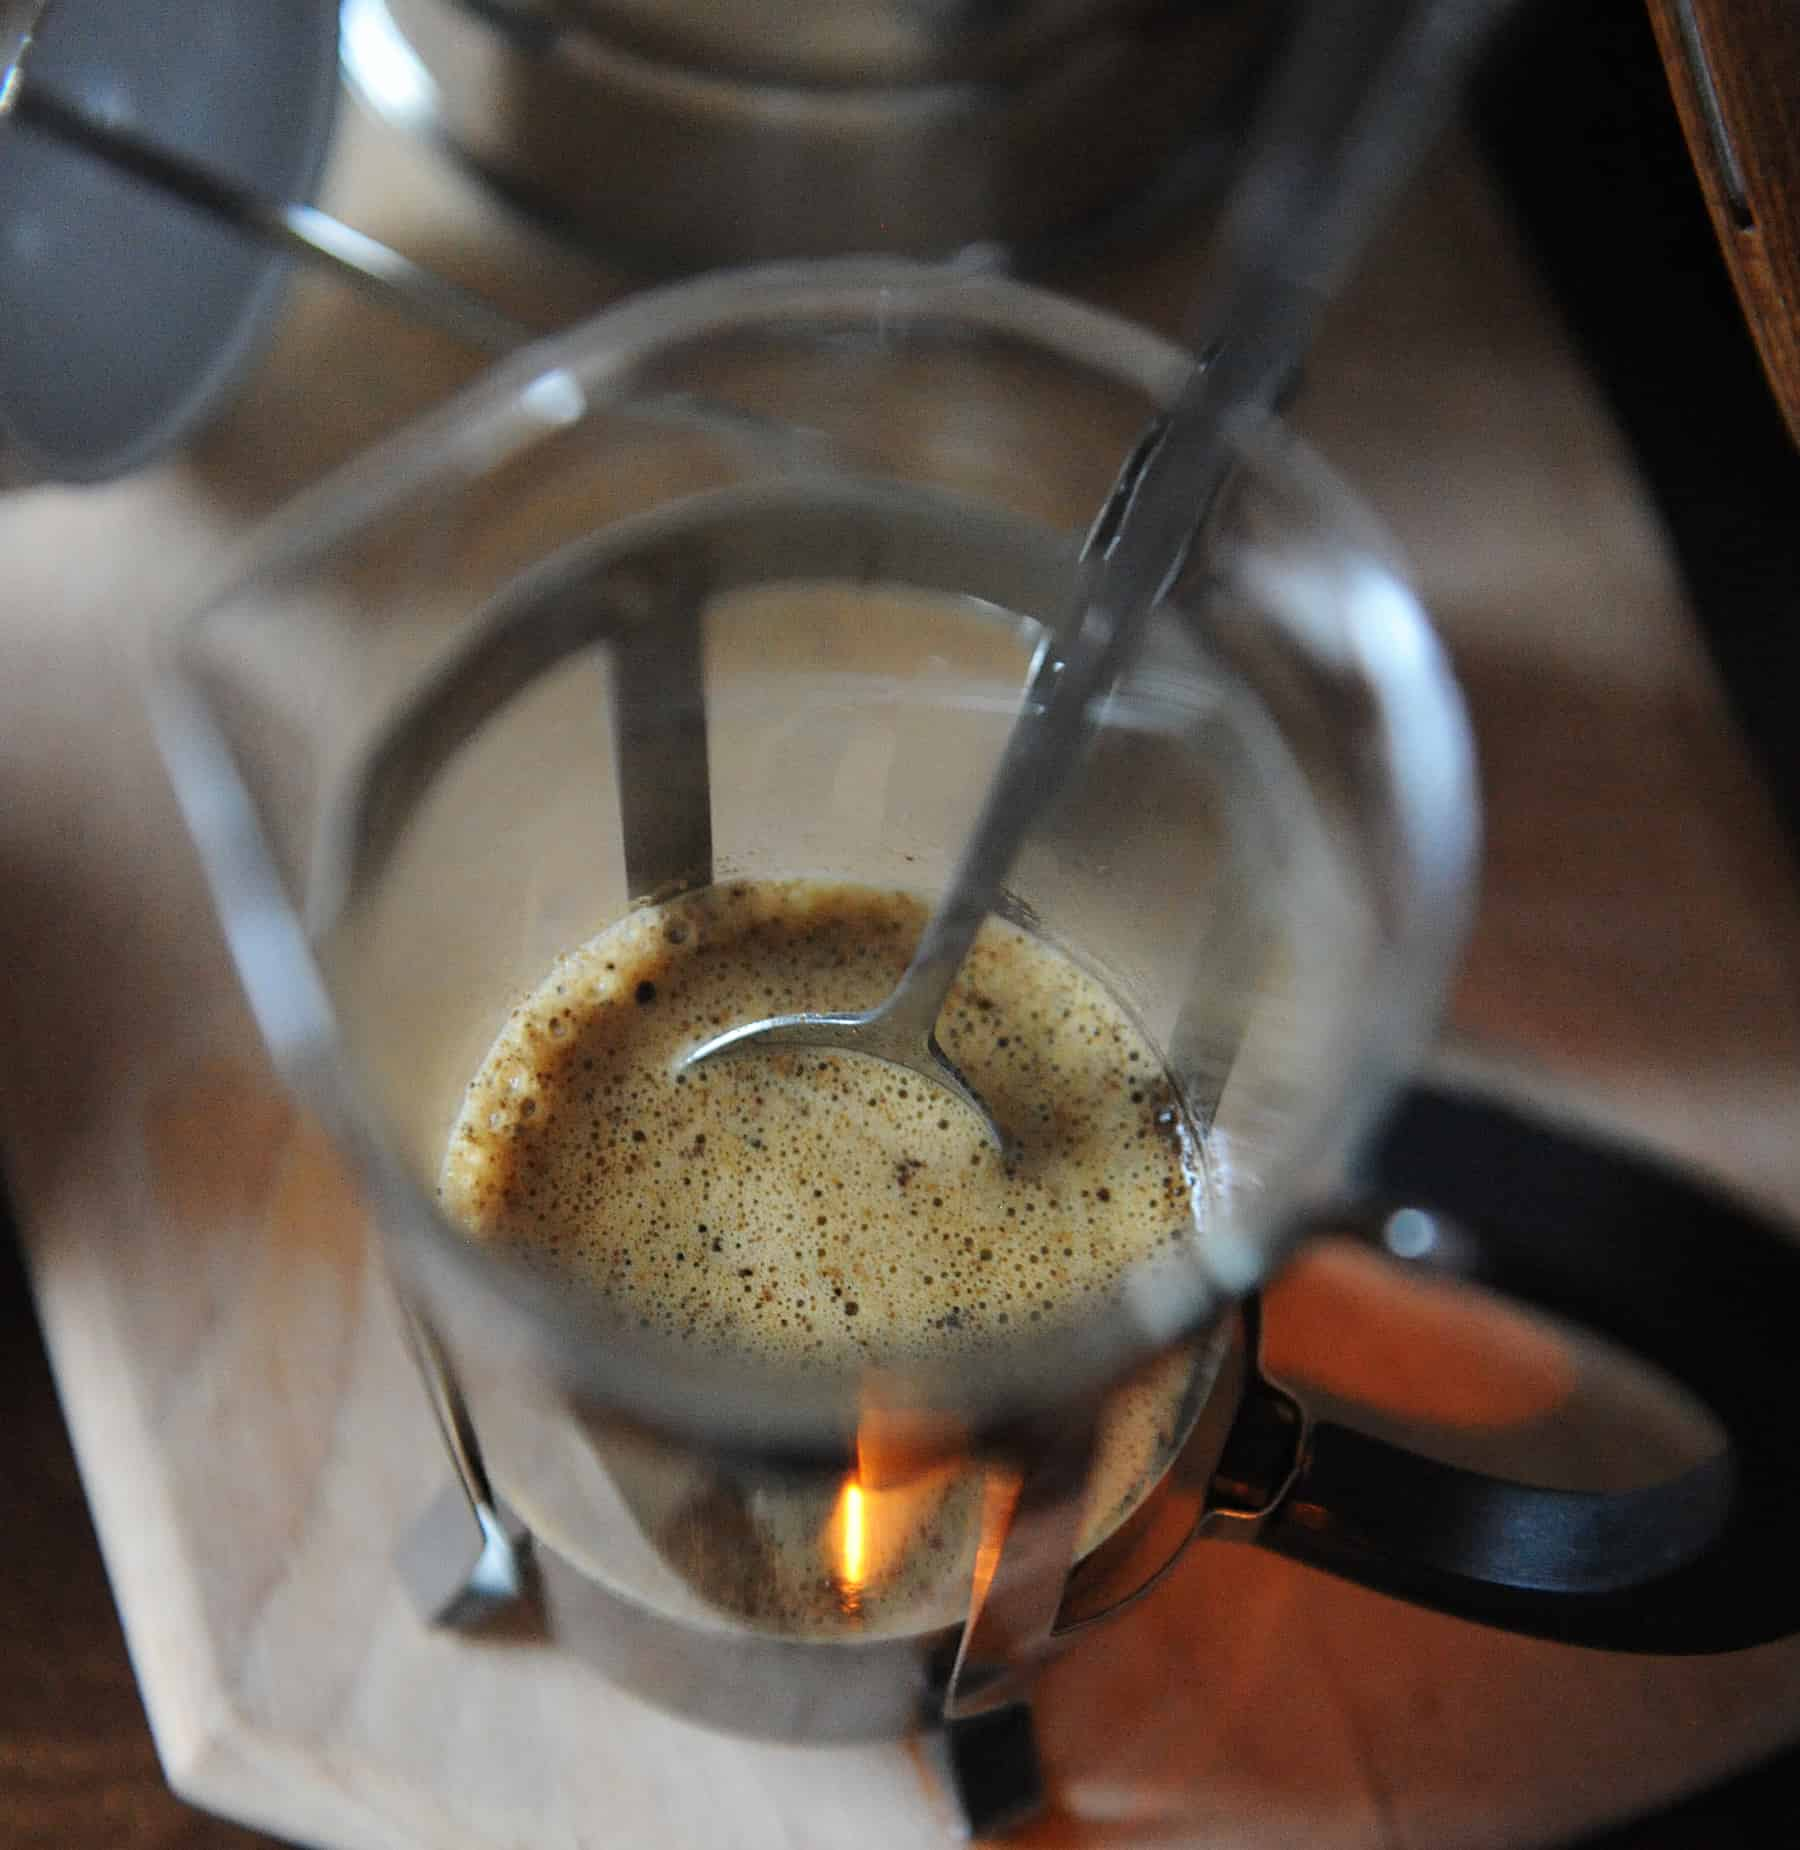 breaking the crust in a french press